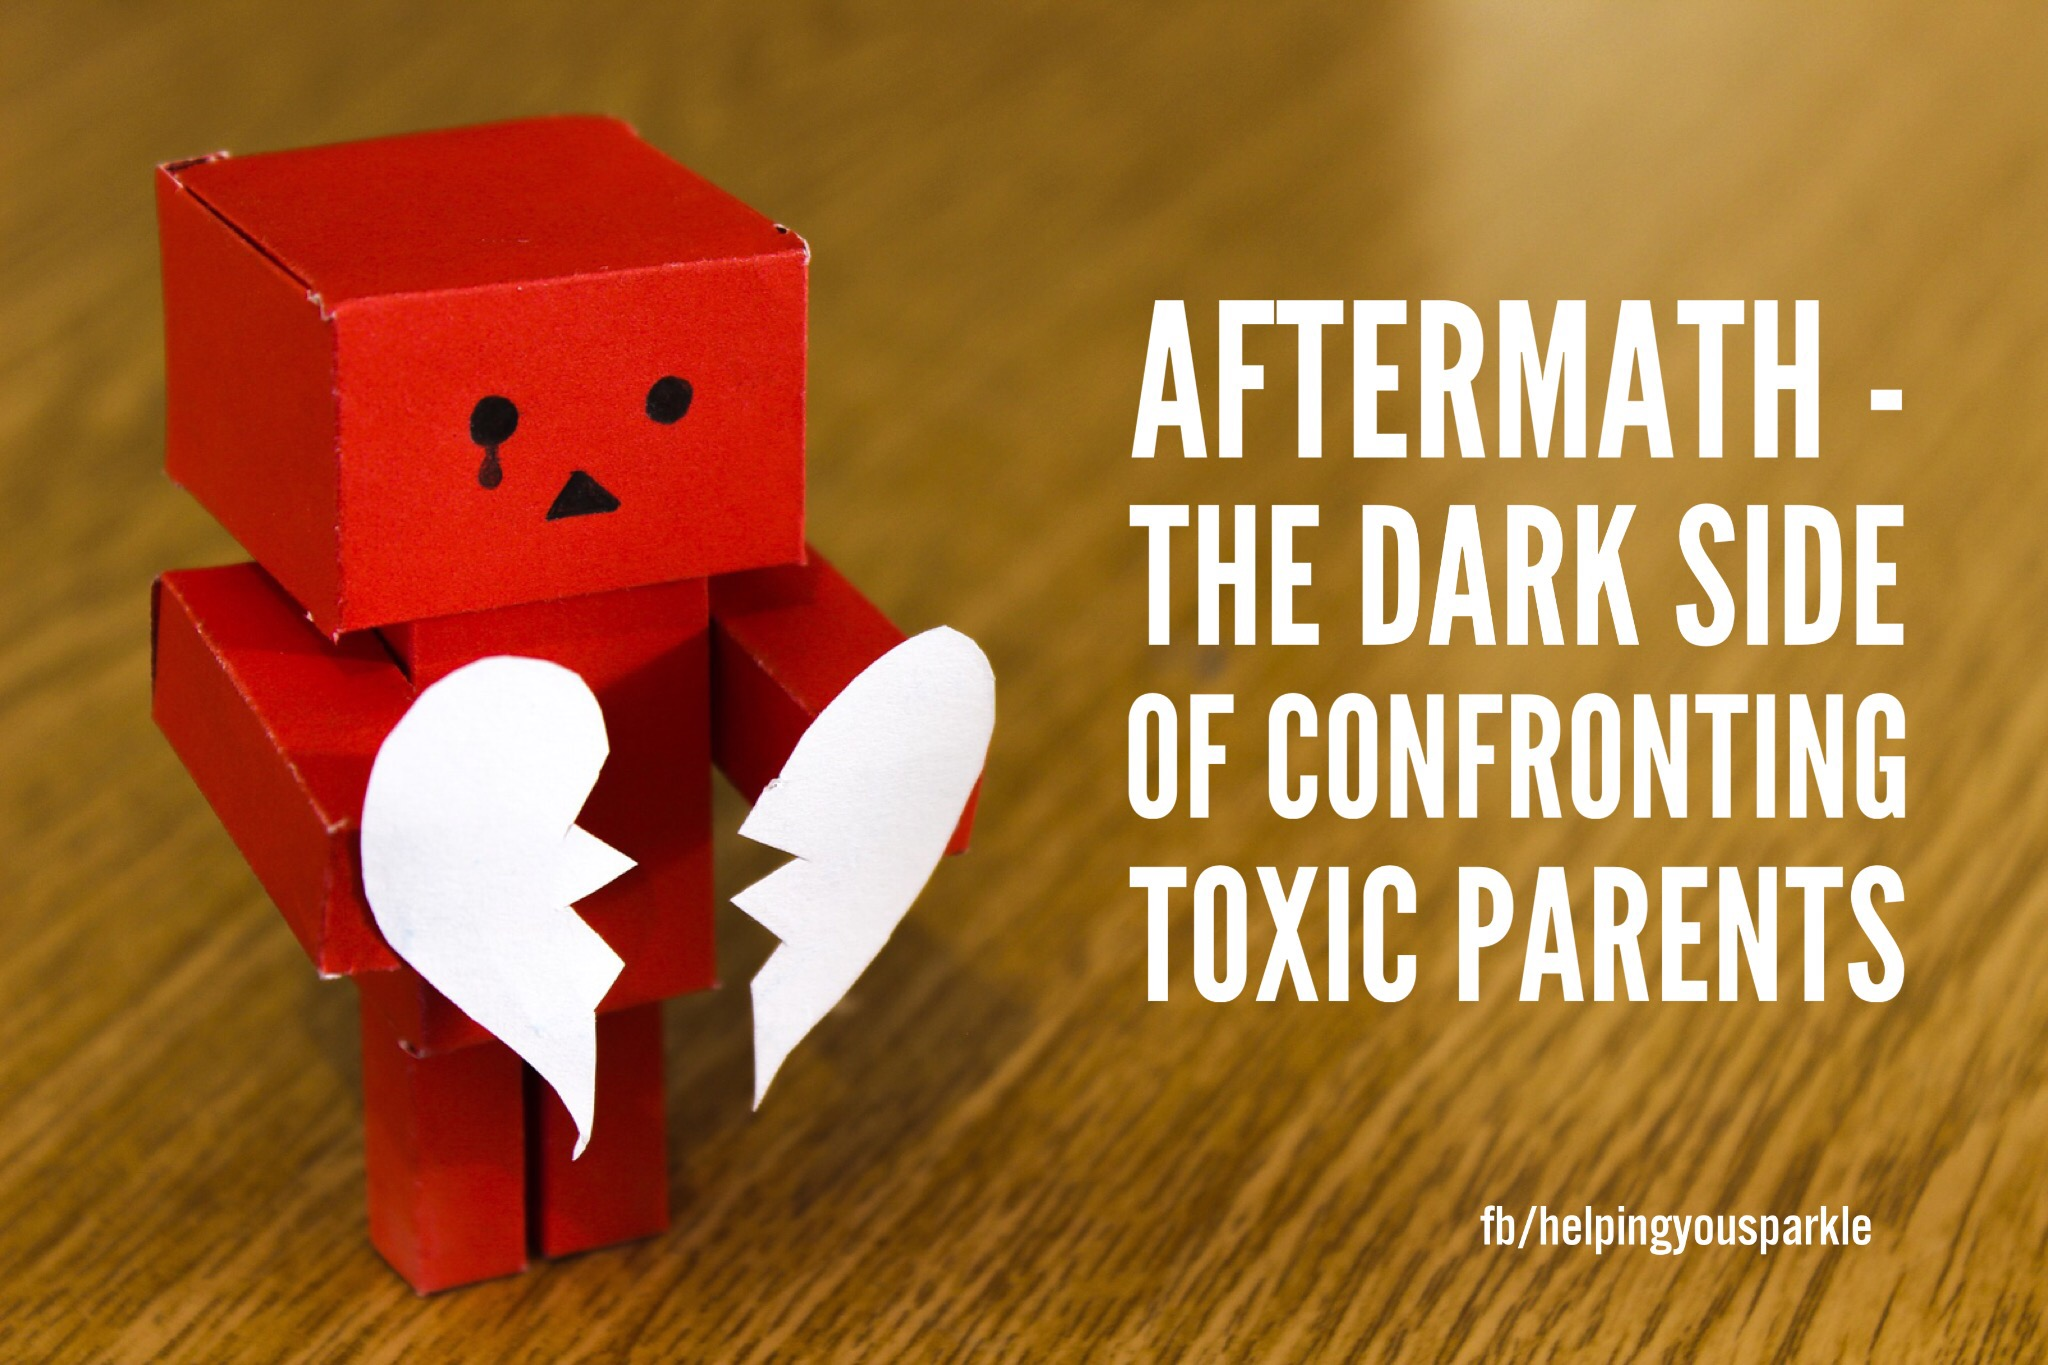 Aftermath – the dark side of confronting toxic parents